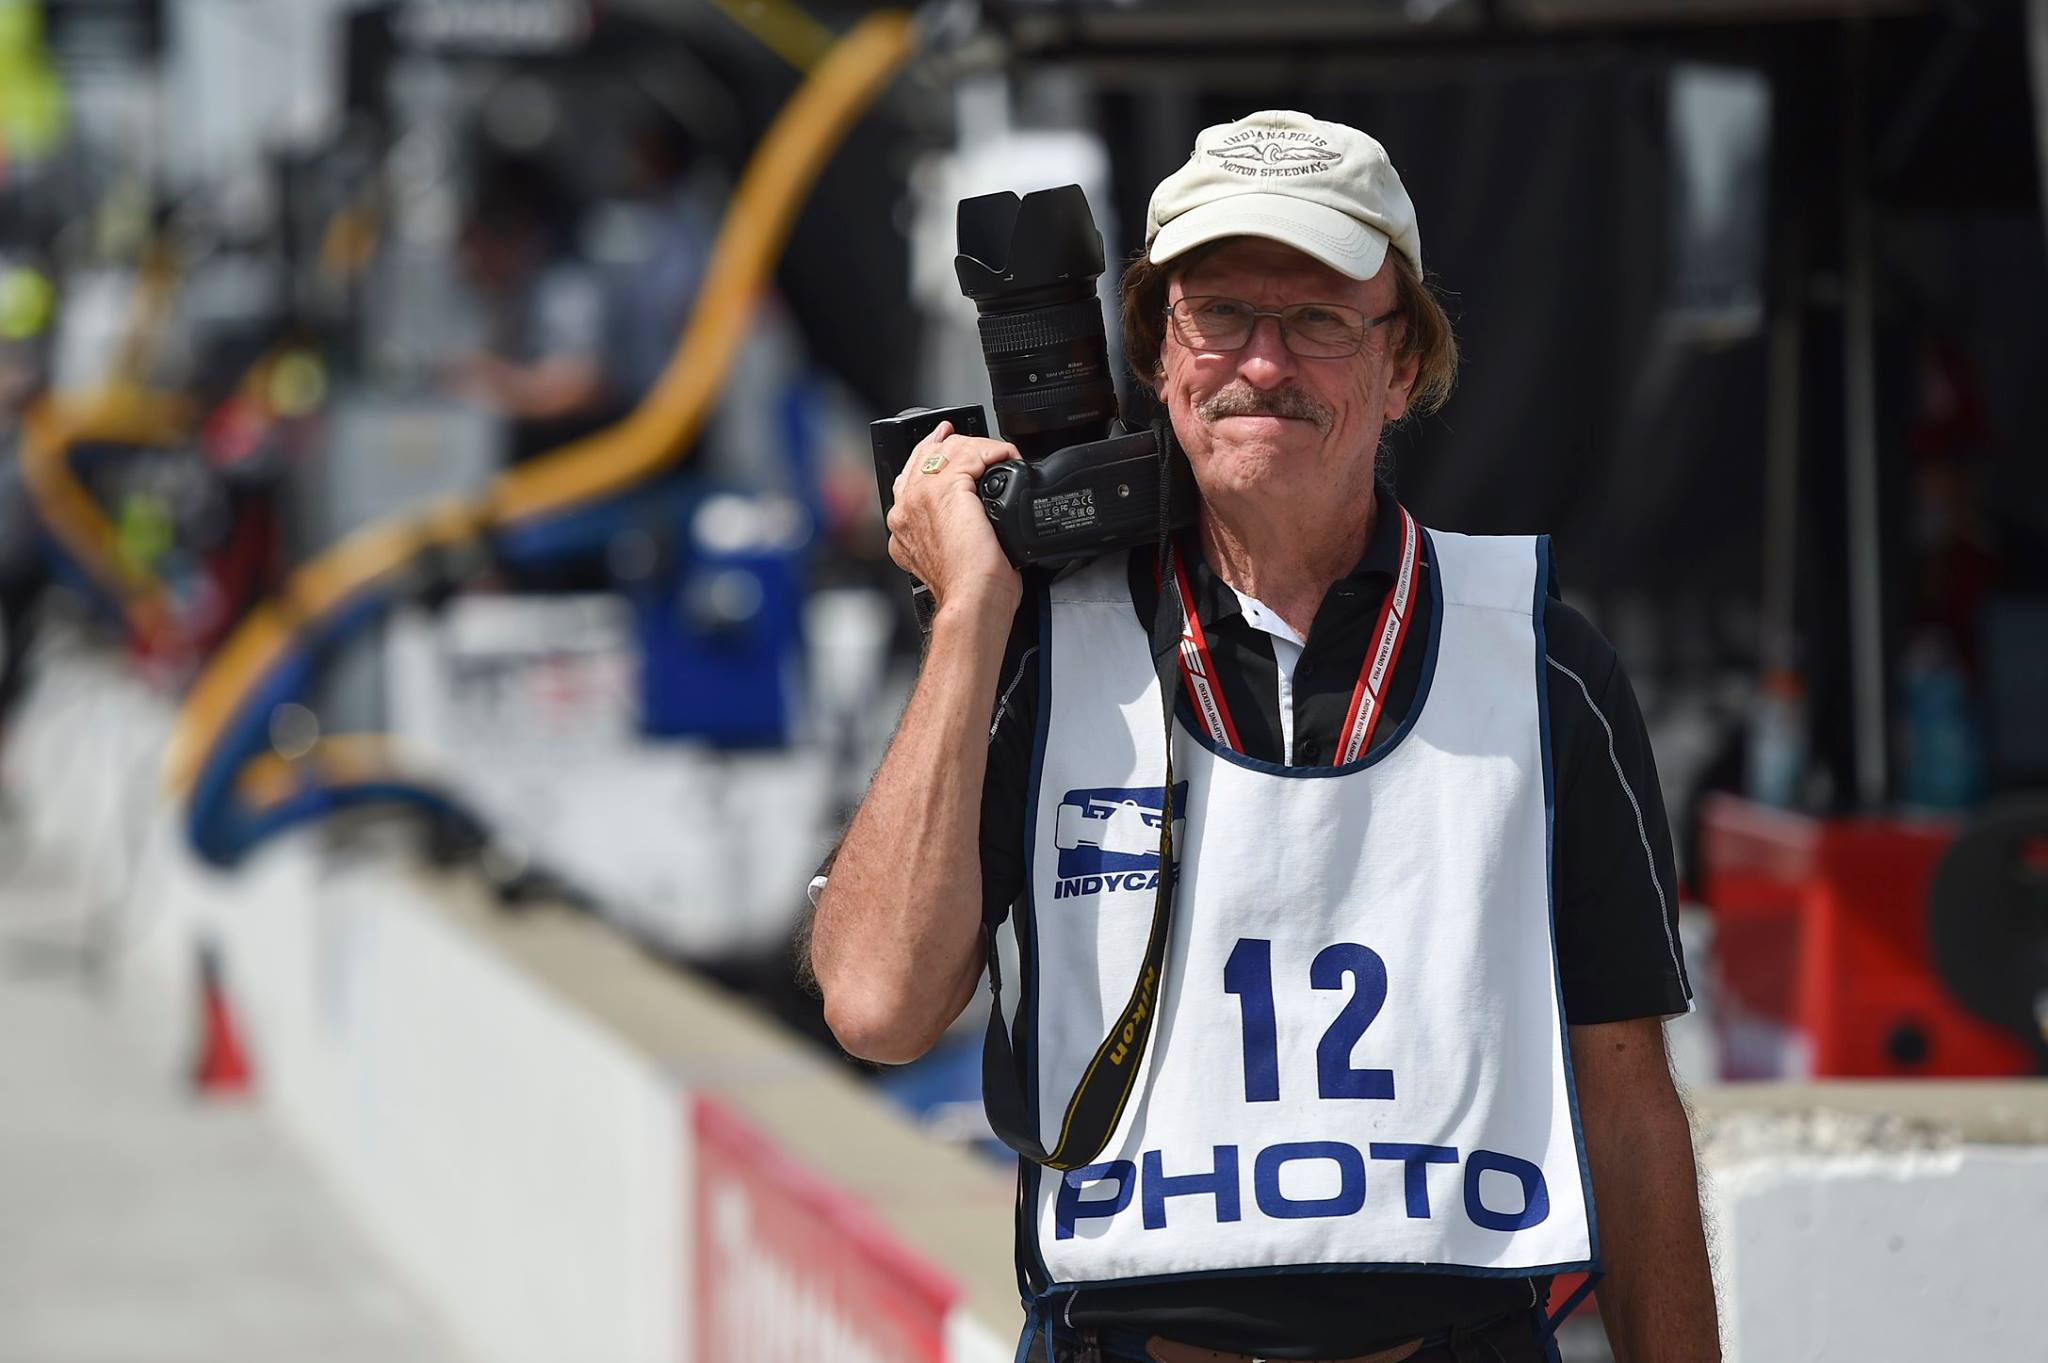 A legend in American Motorsport Photography - Jim Haines - Shot with Nikon D4S - Indianapolis Motor Speedway